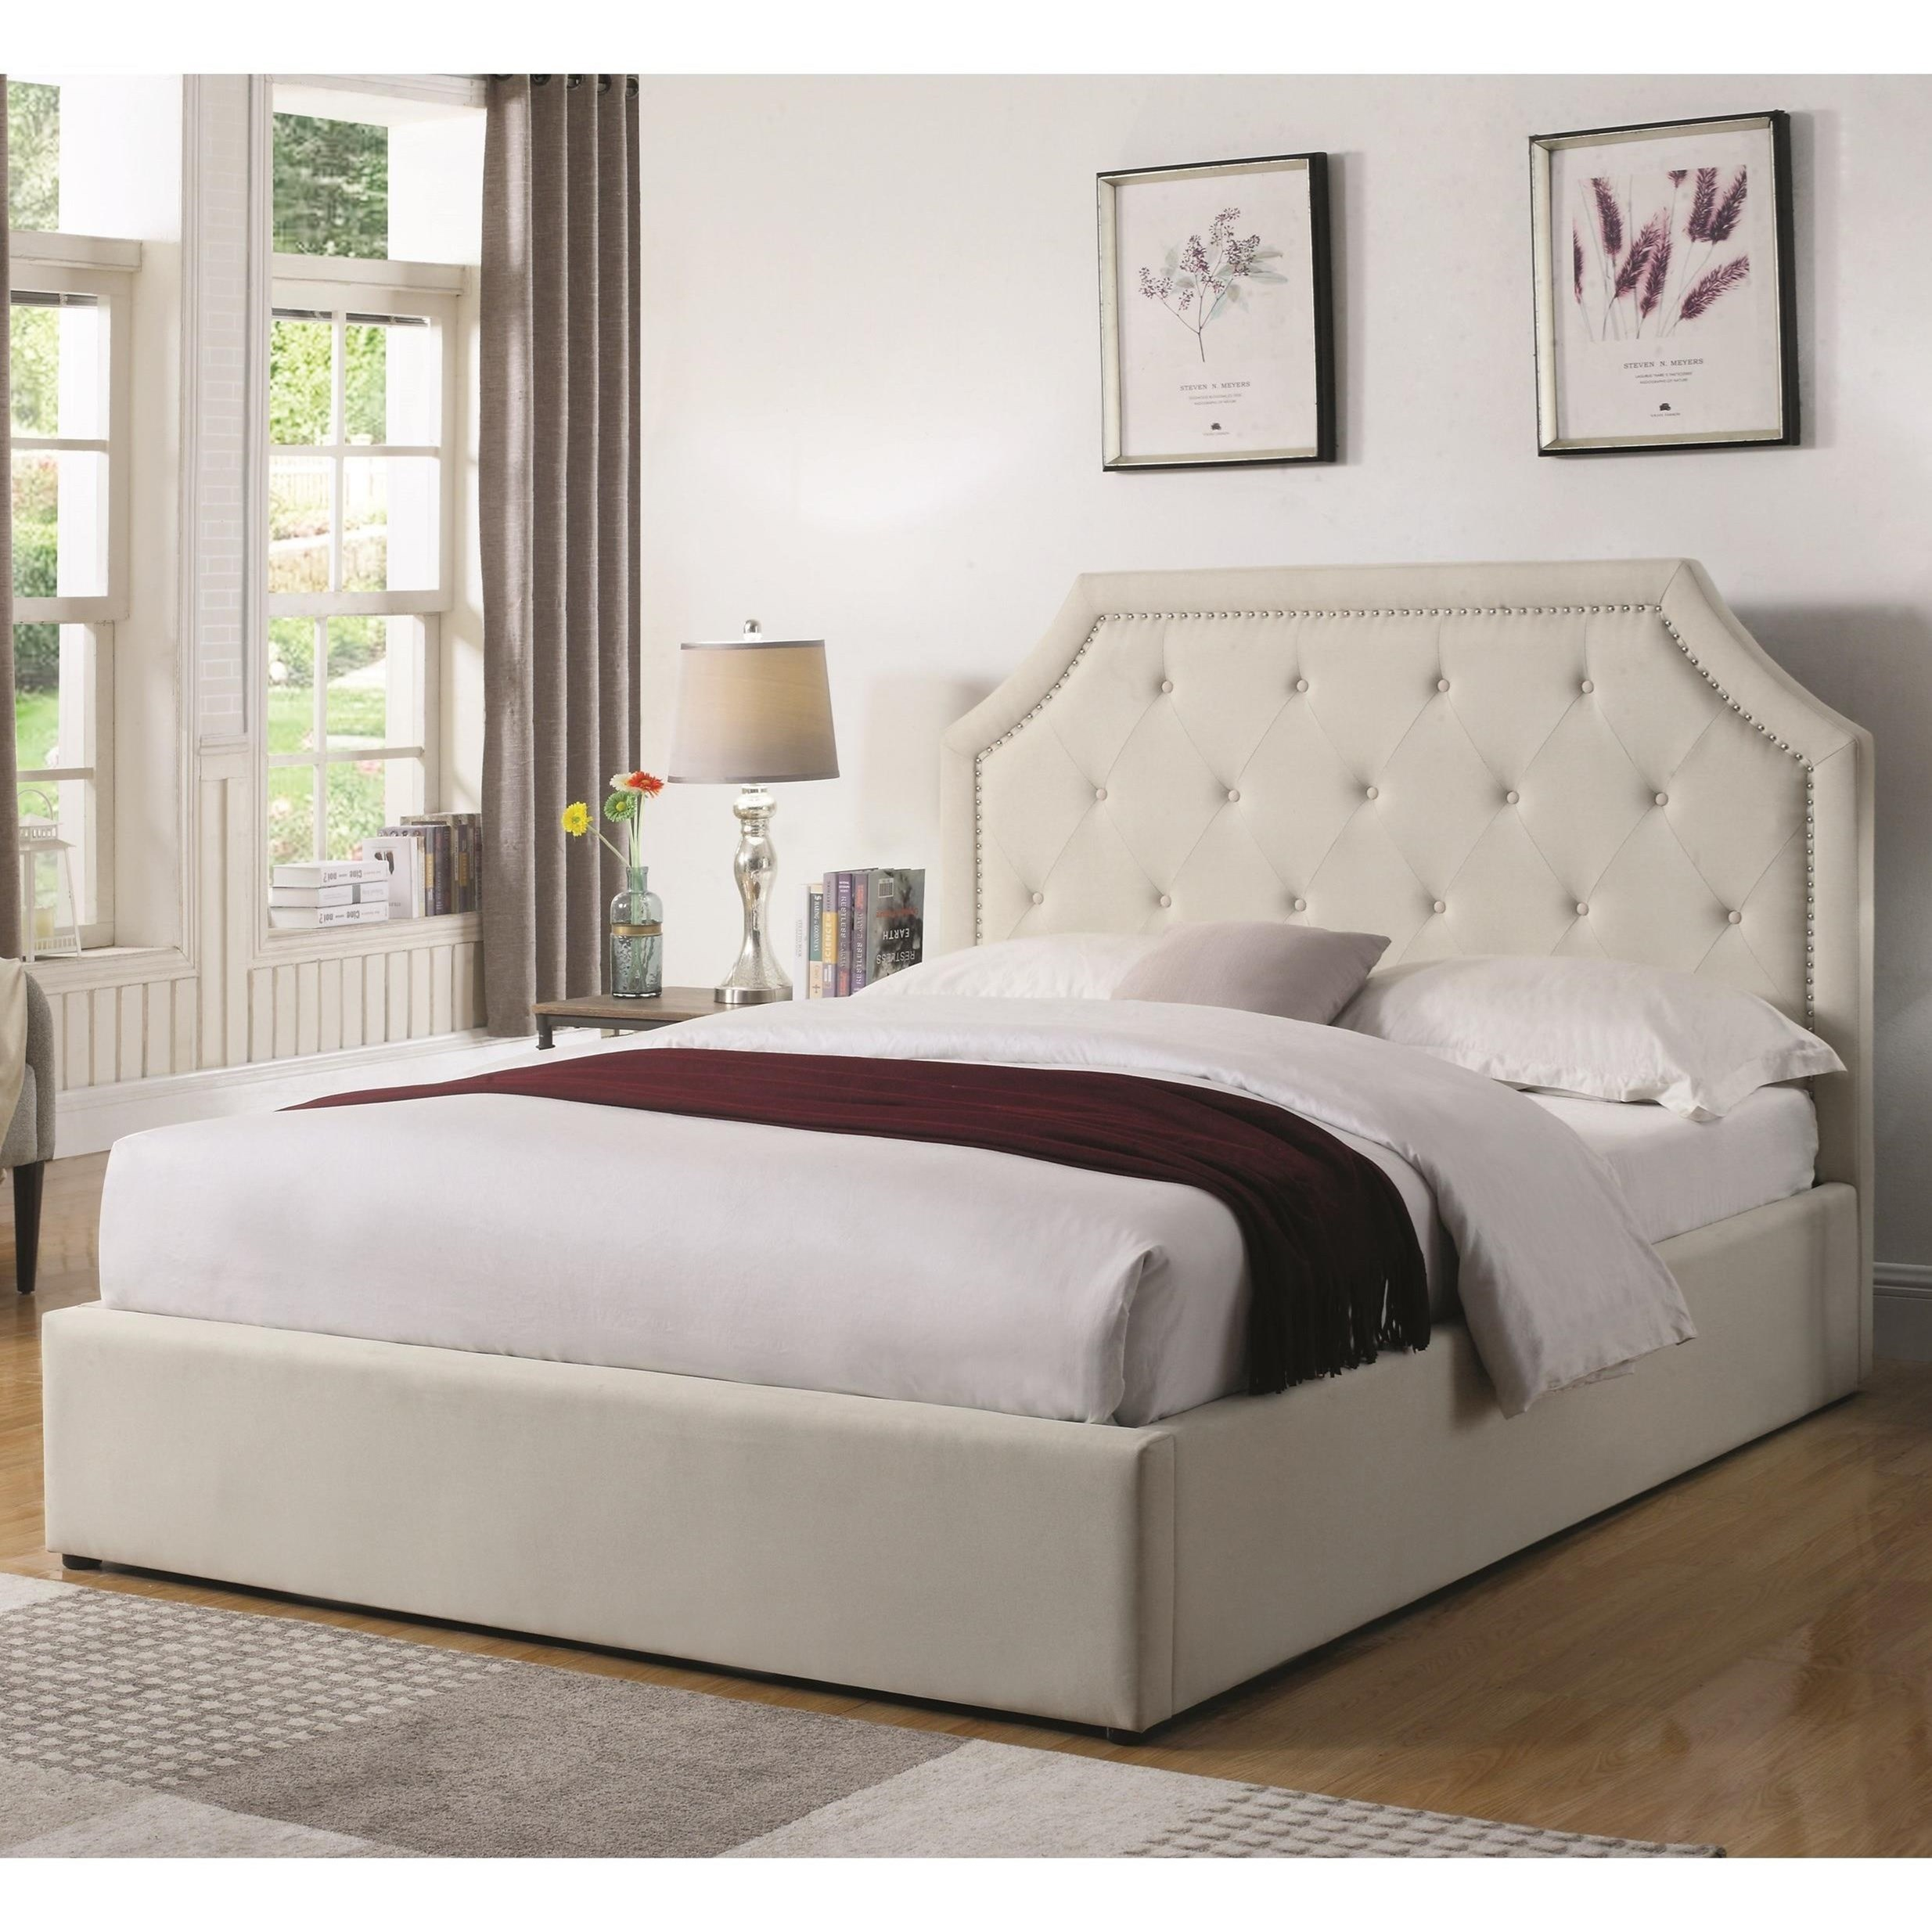 Coaster Hermosa Beige Queen Upholstered Platform Bed Dallas Tx Bedroom Bed Furniture Nation